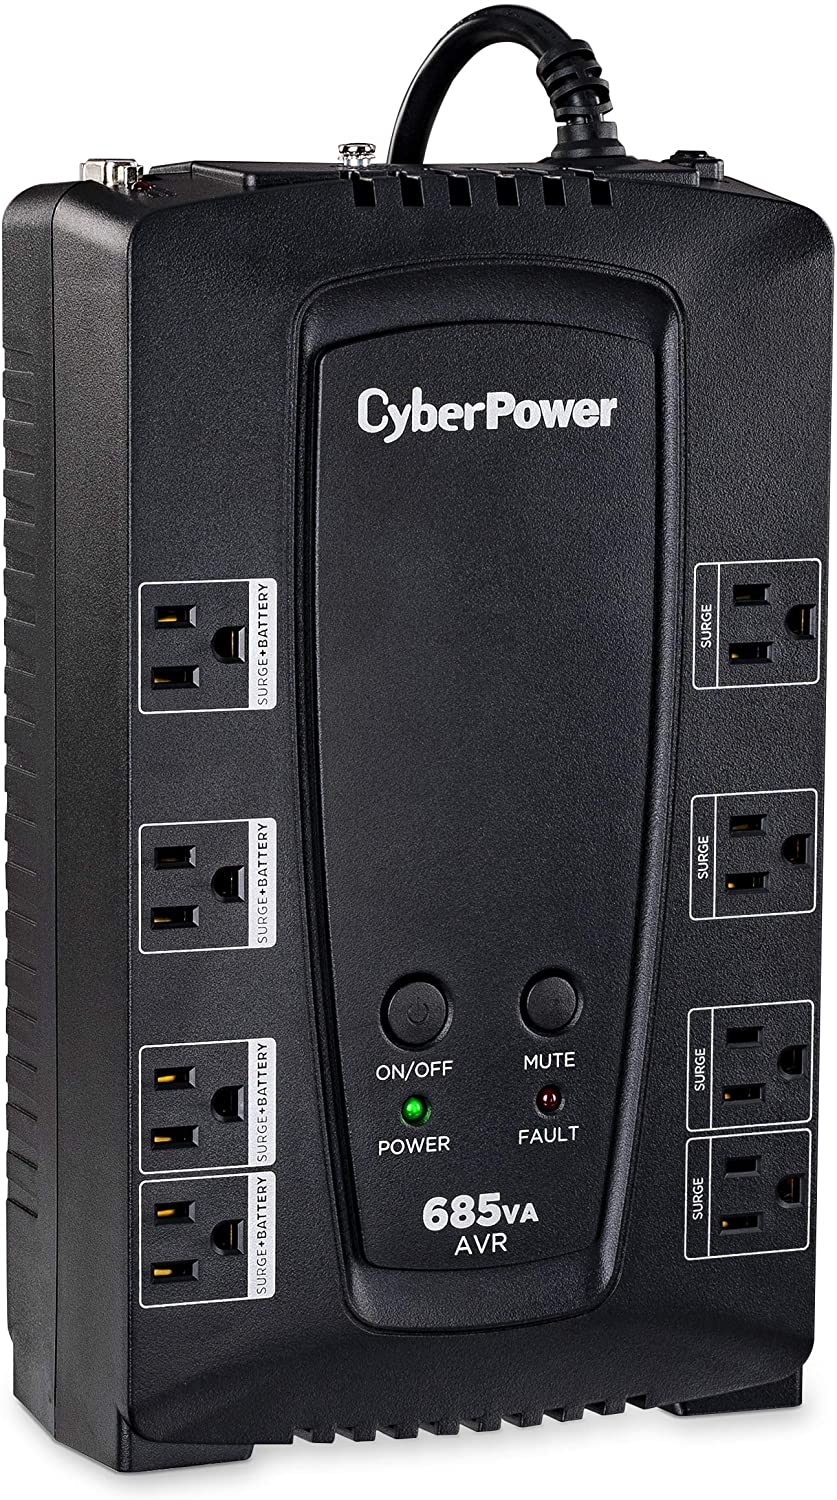 CyberPower CP685AVRG AVR UPS System, 685VA/390W, 8 Outlets, Compact